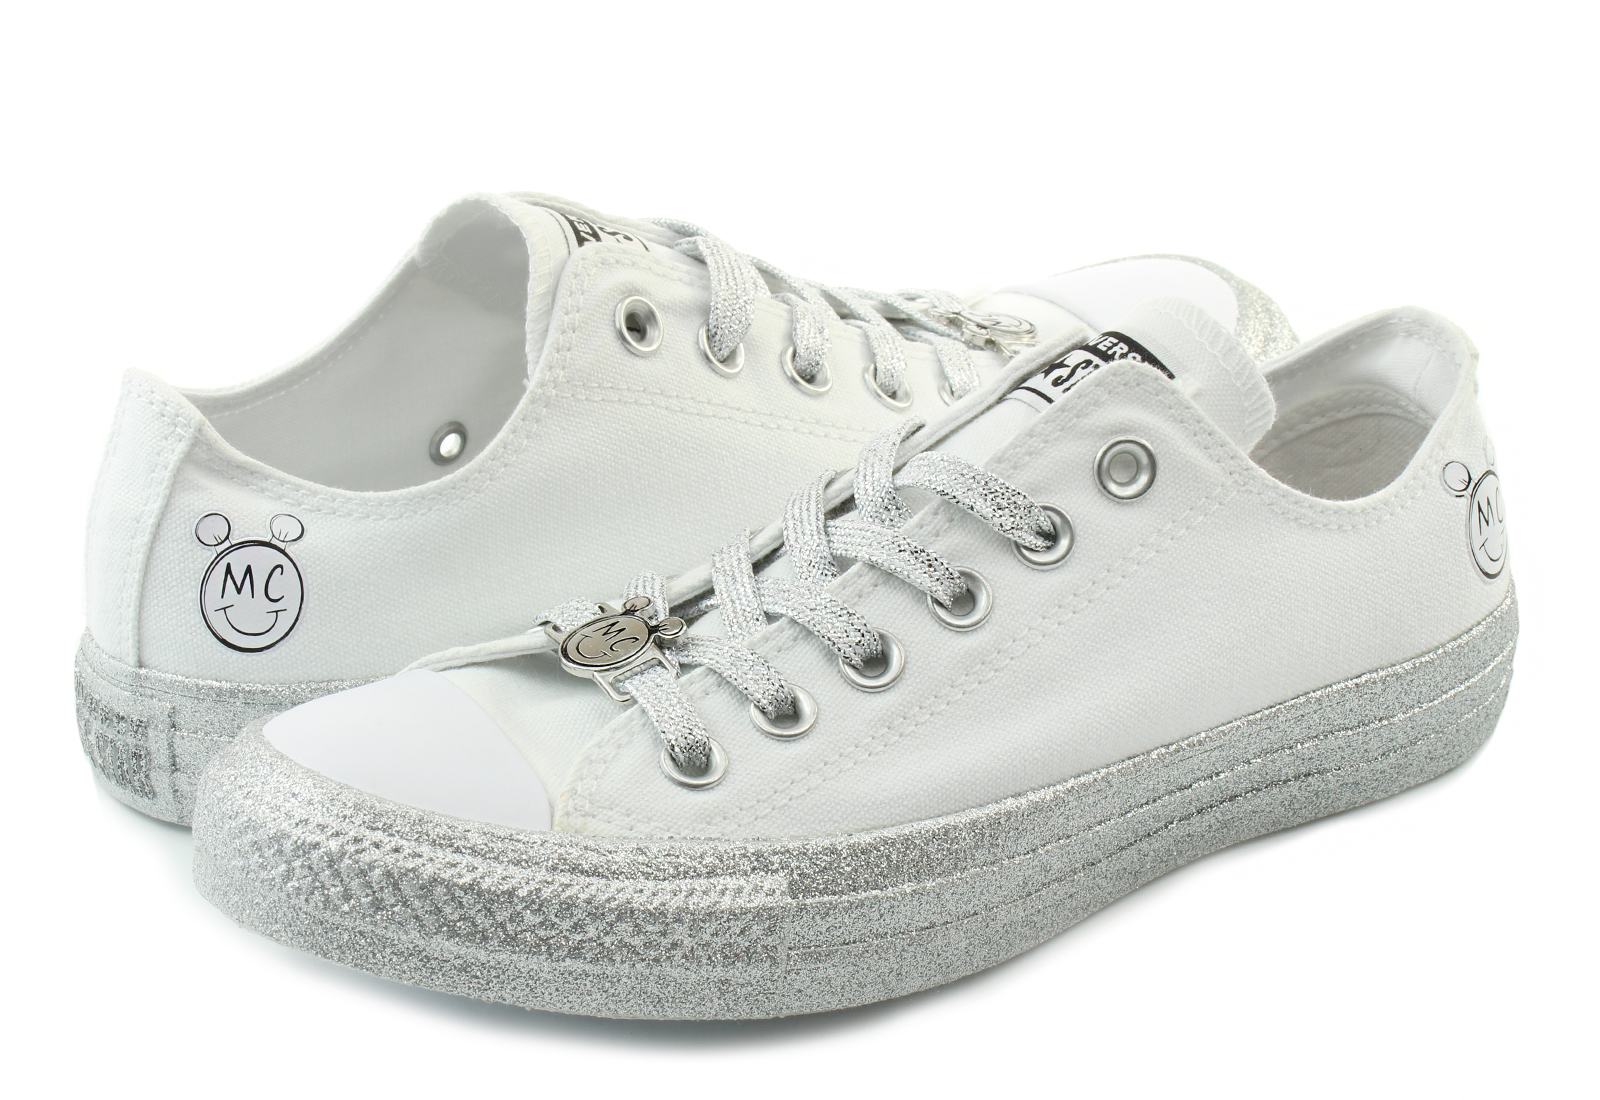 87baf4385895 Converse Sneakers - Chuck Taylor Miley Cyrus Classic Ox - 162238C ...